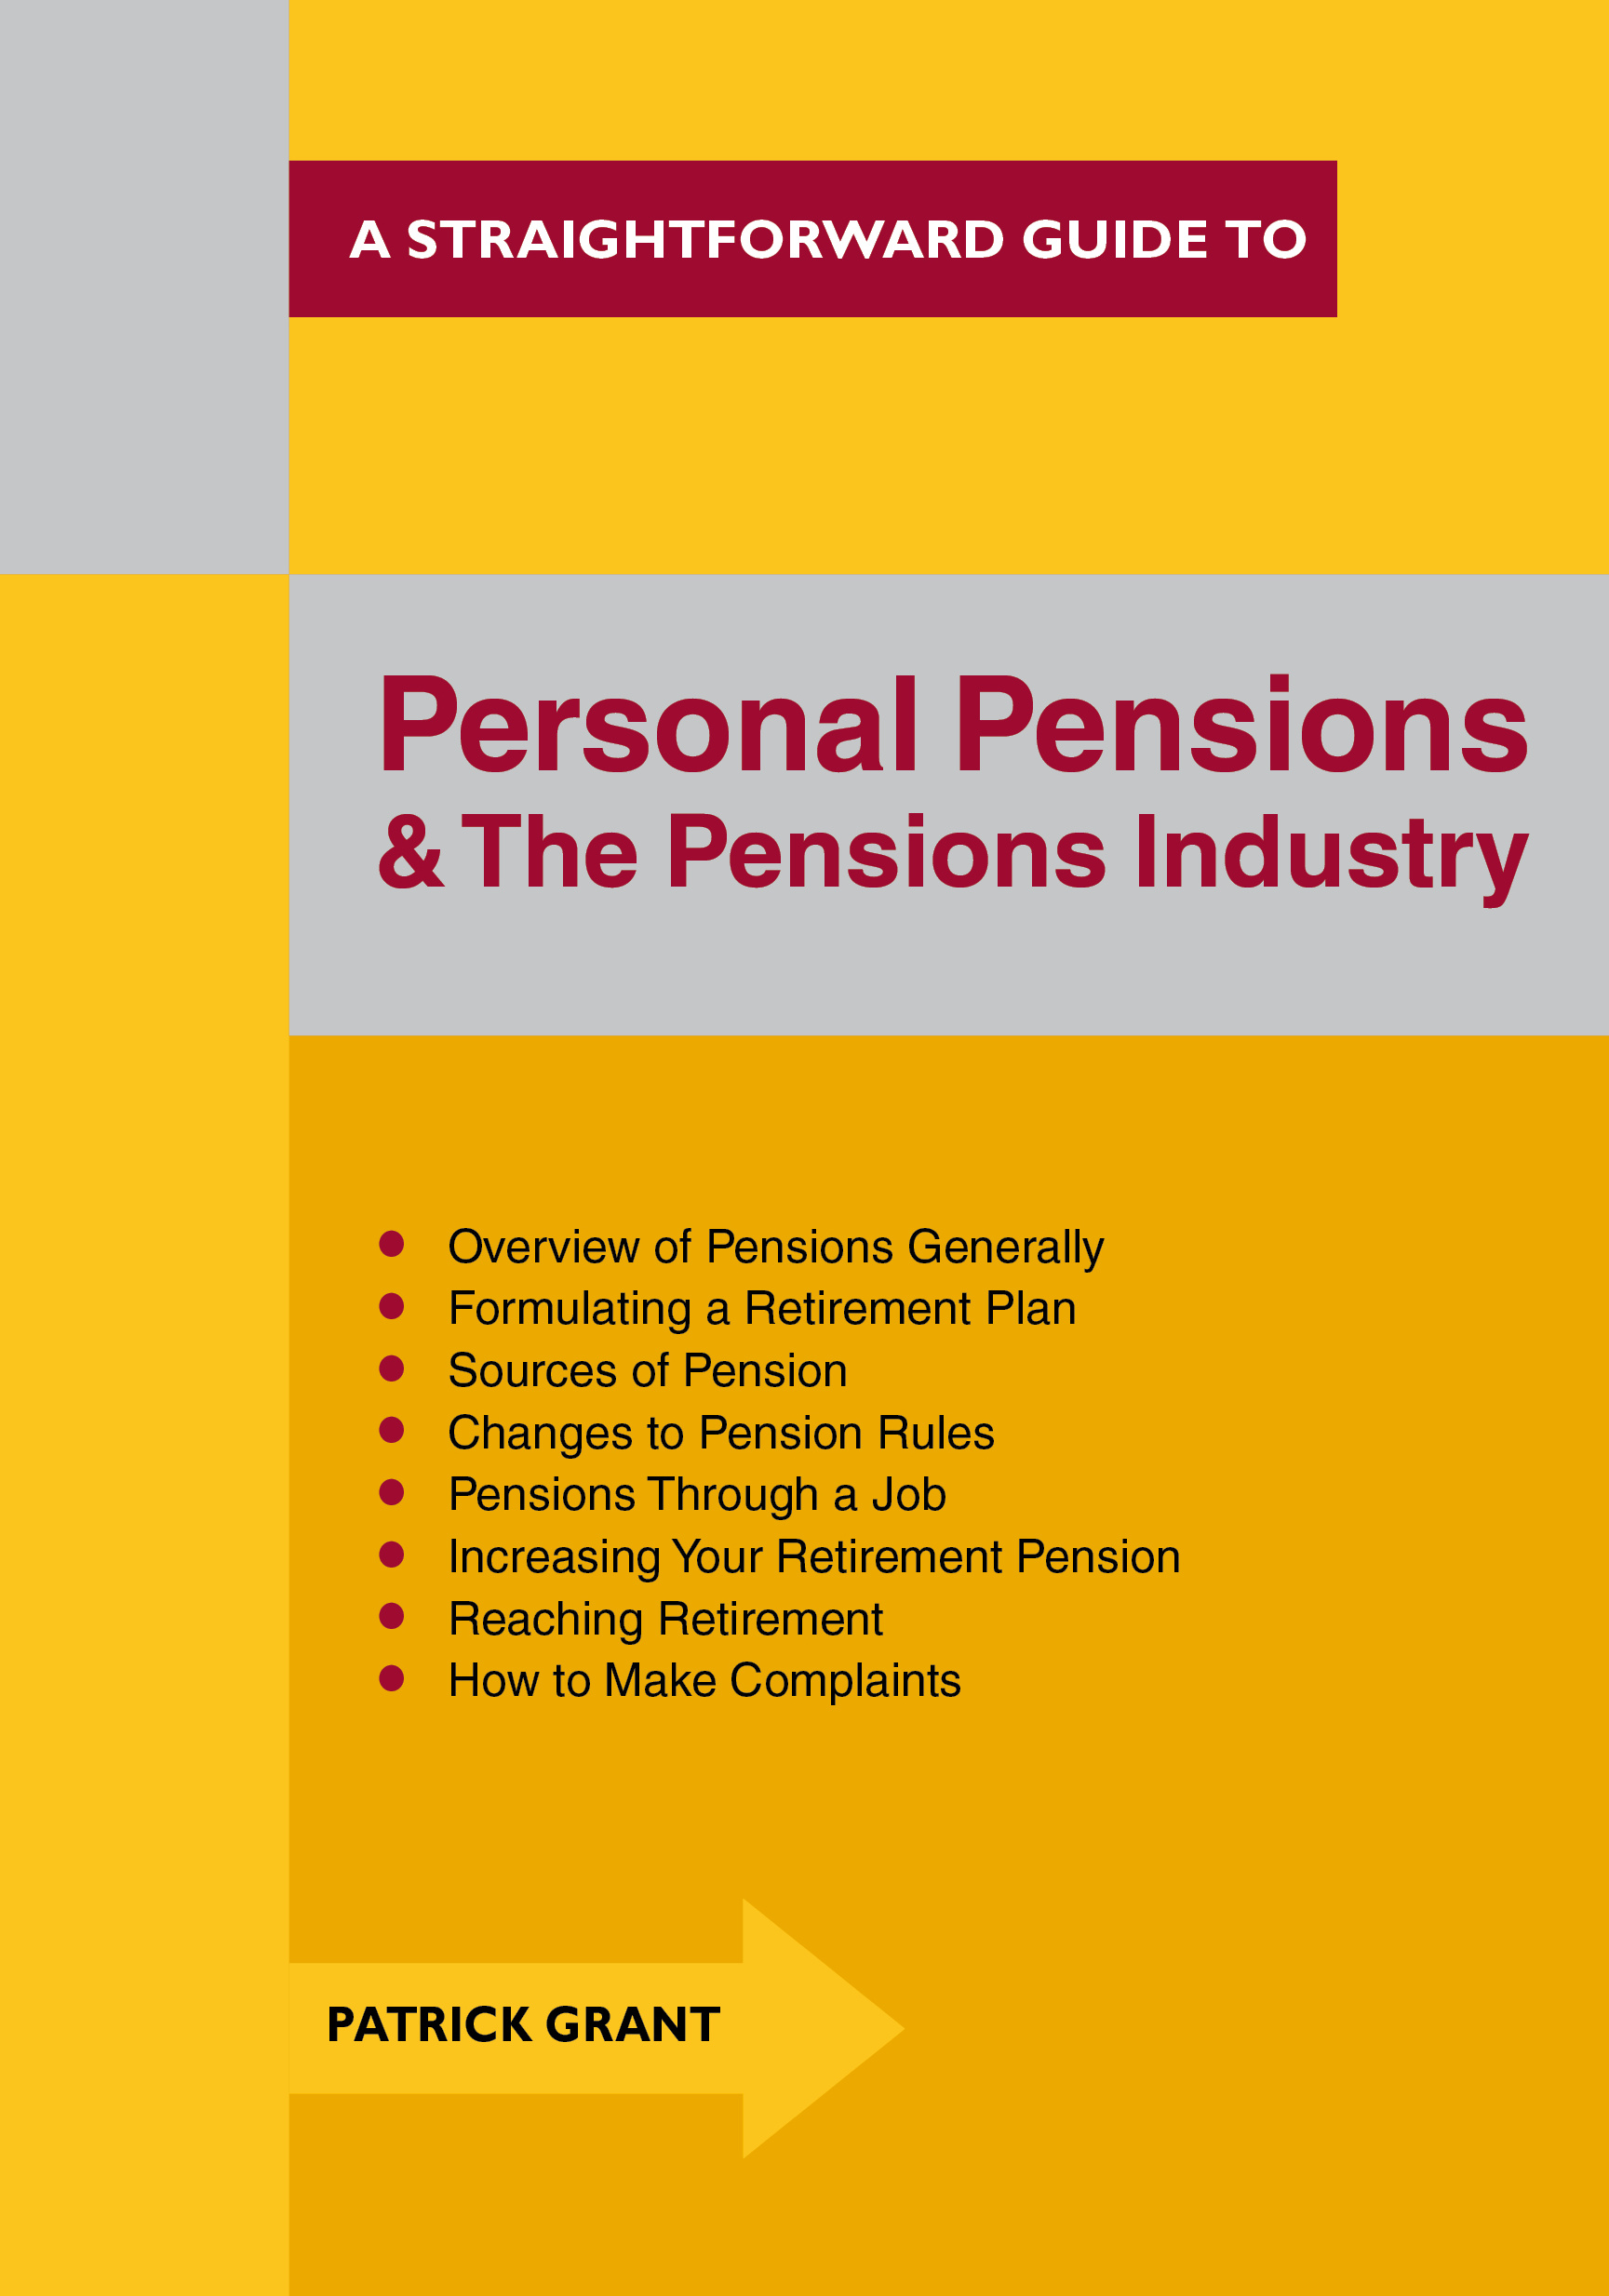 Personal Pensions